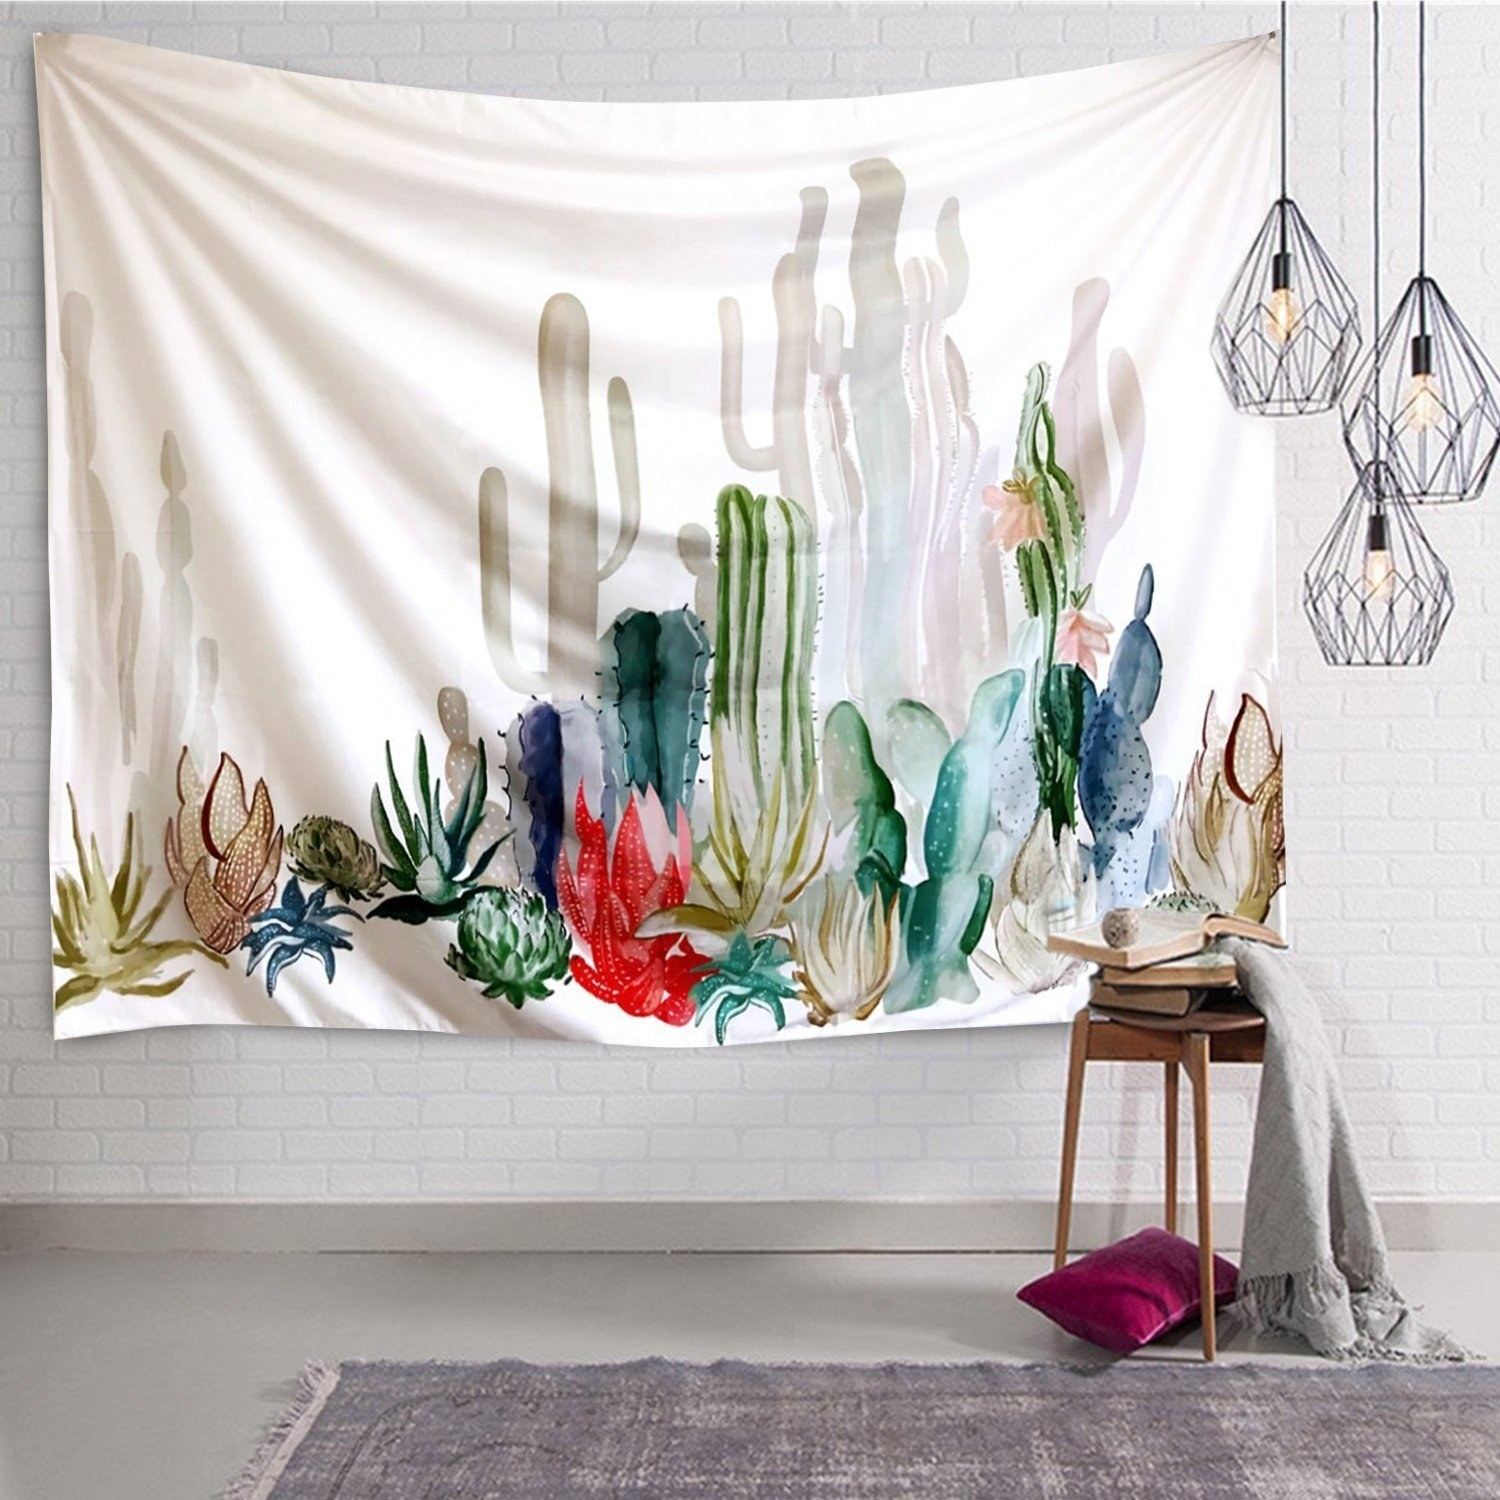 Home Decorating Styles Quiz: 31 Inexpensive Items That Will Make Your Dorm Feel More